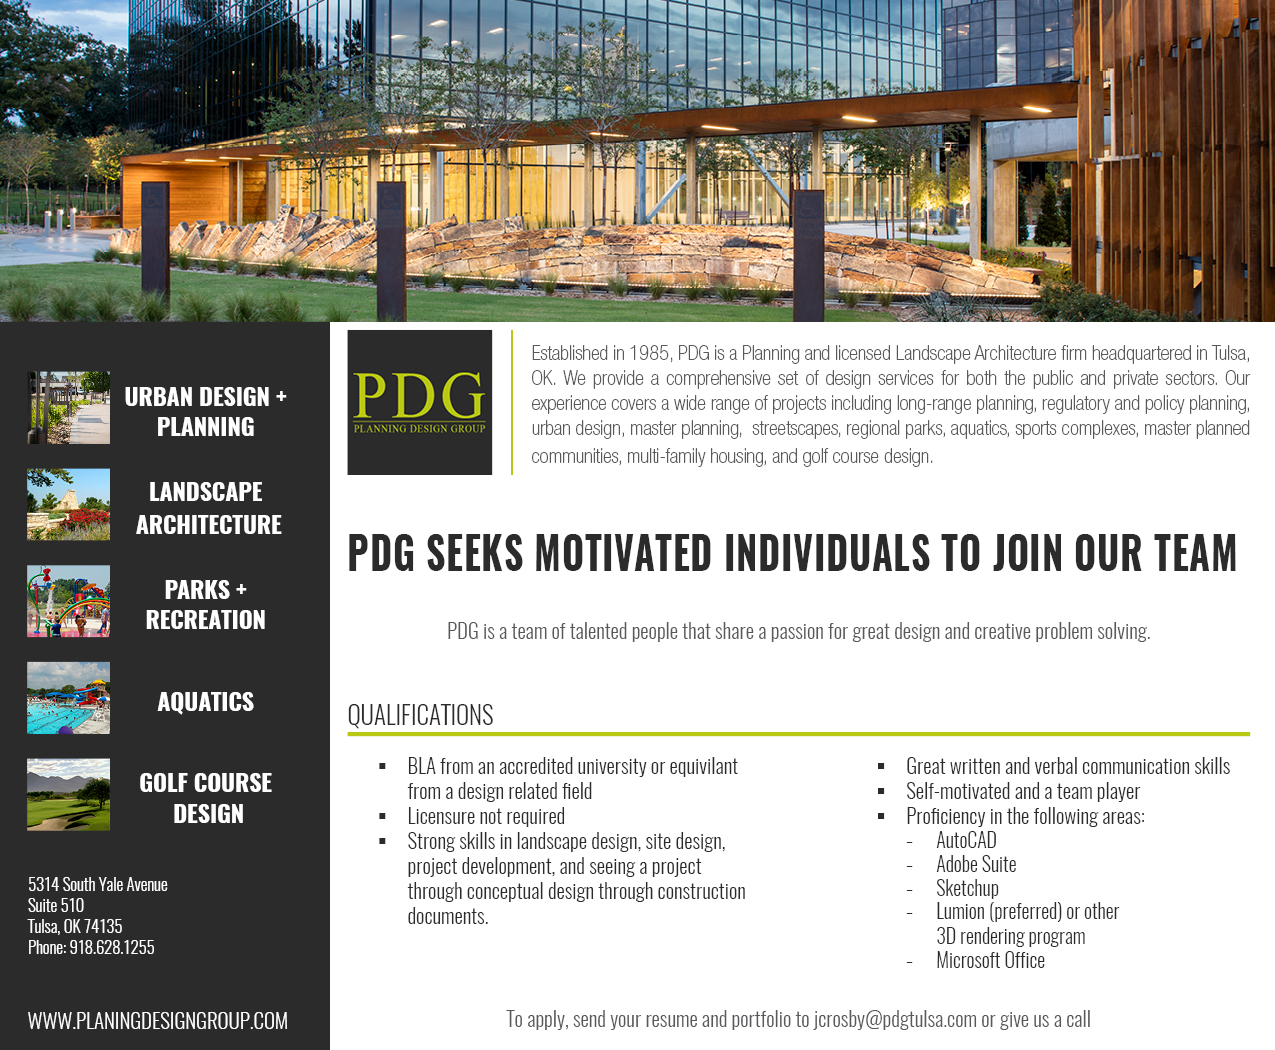 If interest, please send your resume and portfolio to  jcrosby@pdgtulsa.com  or give PDG a call at (918) 628-1255.